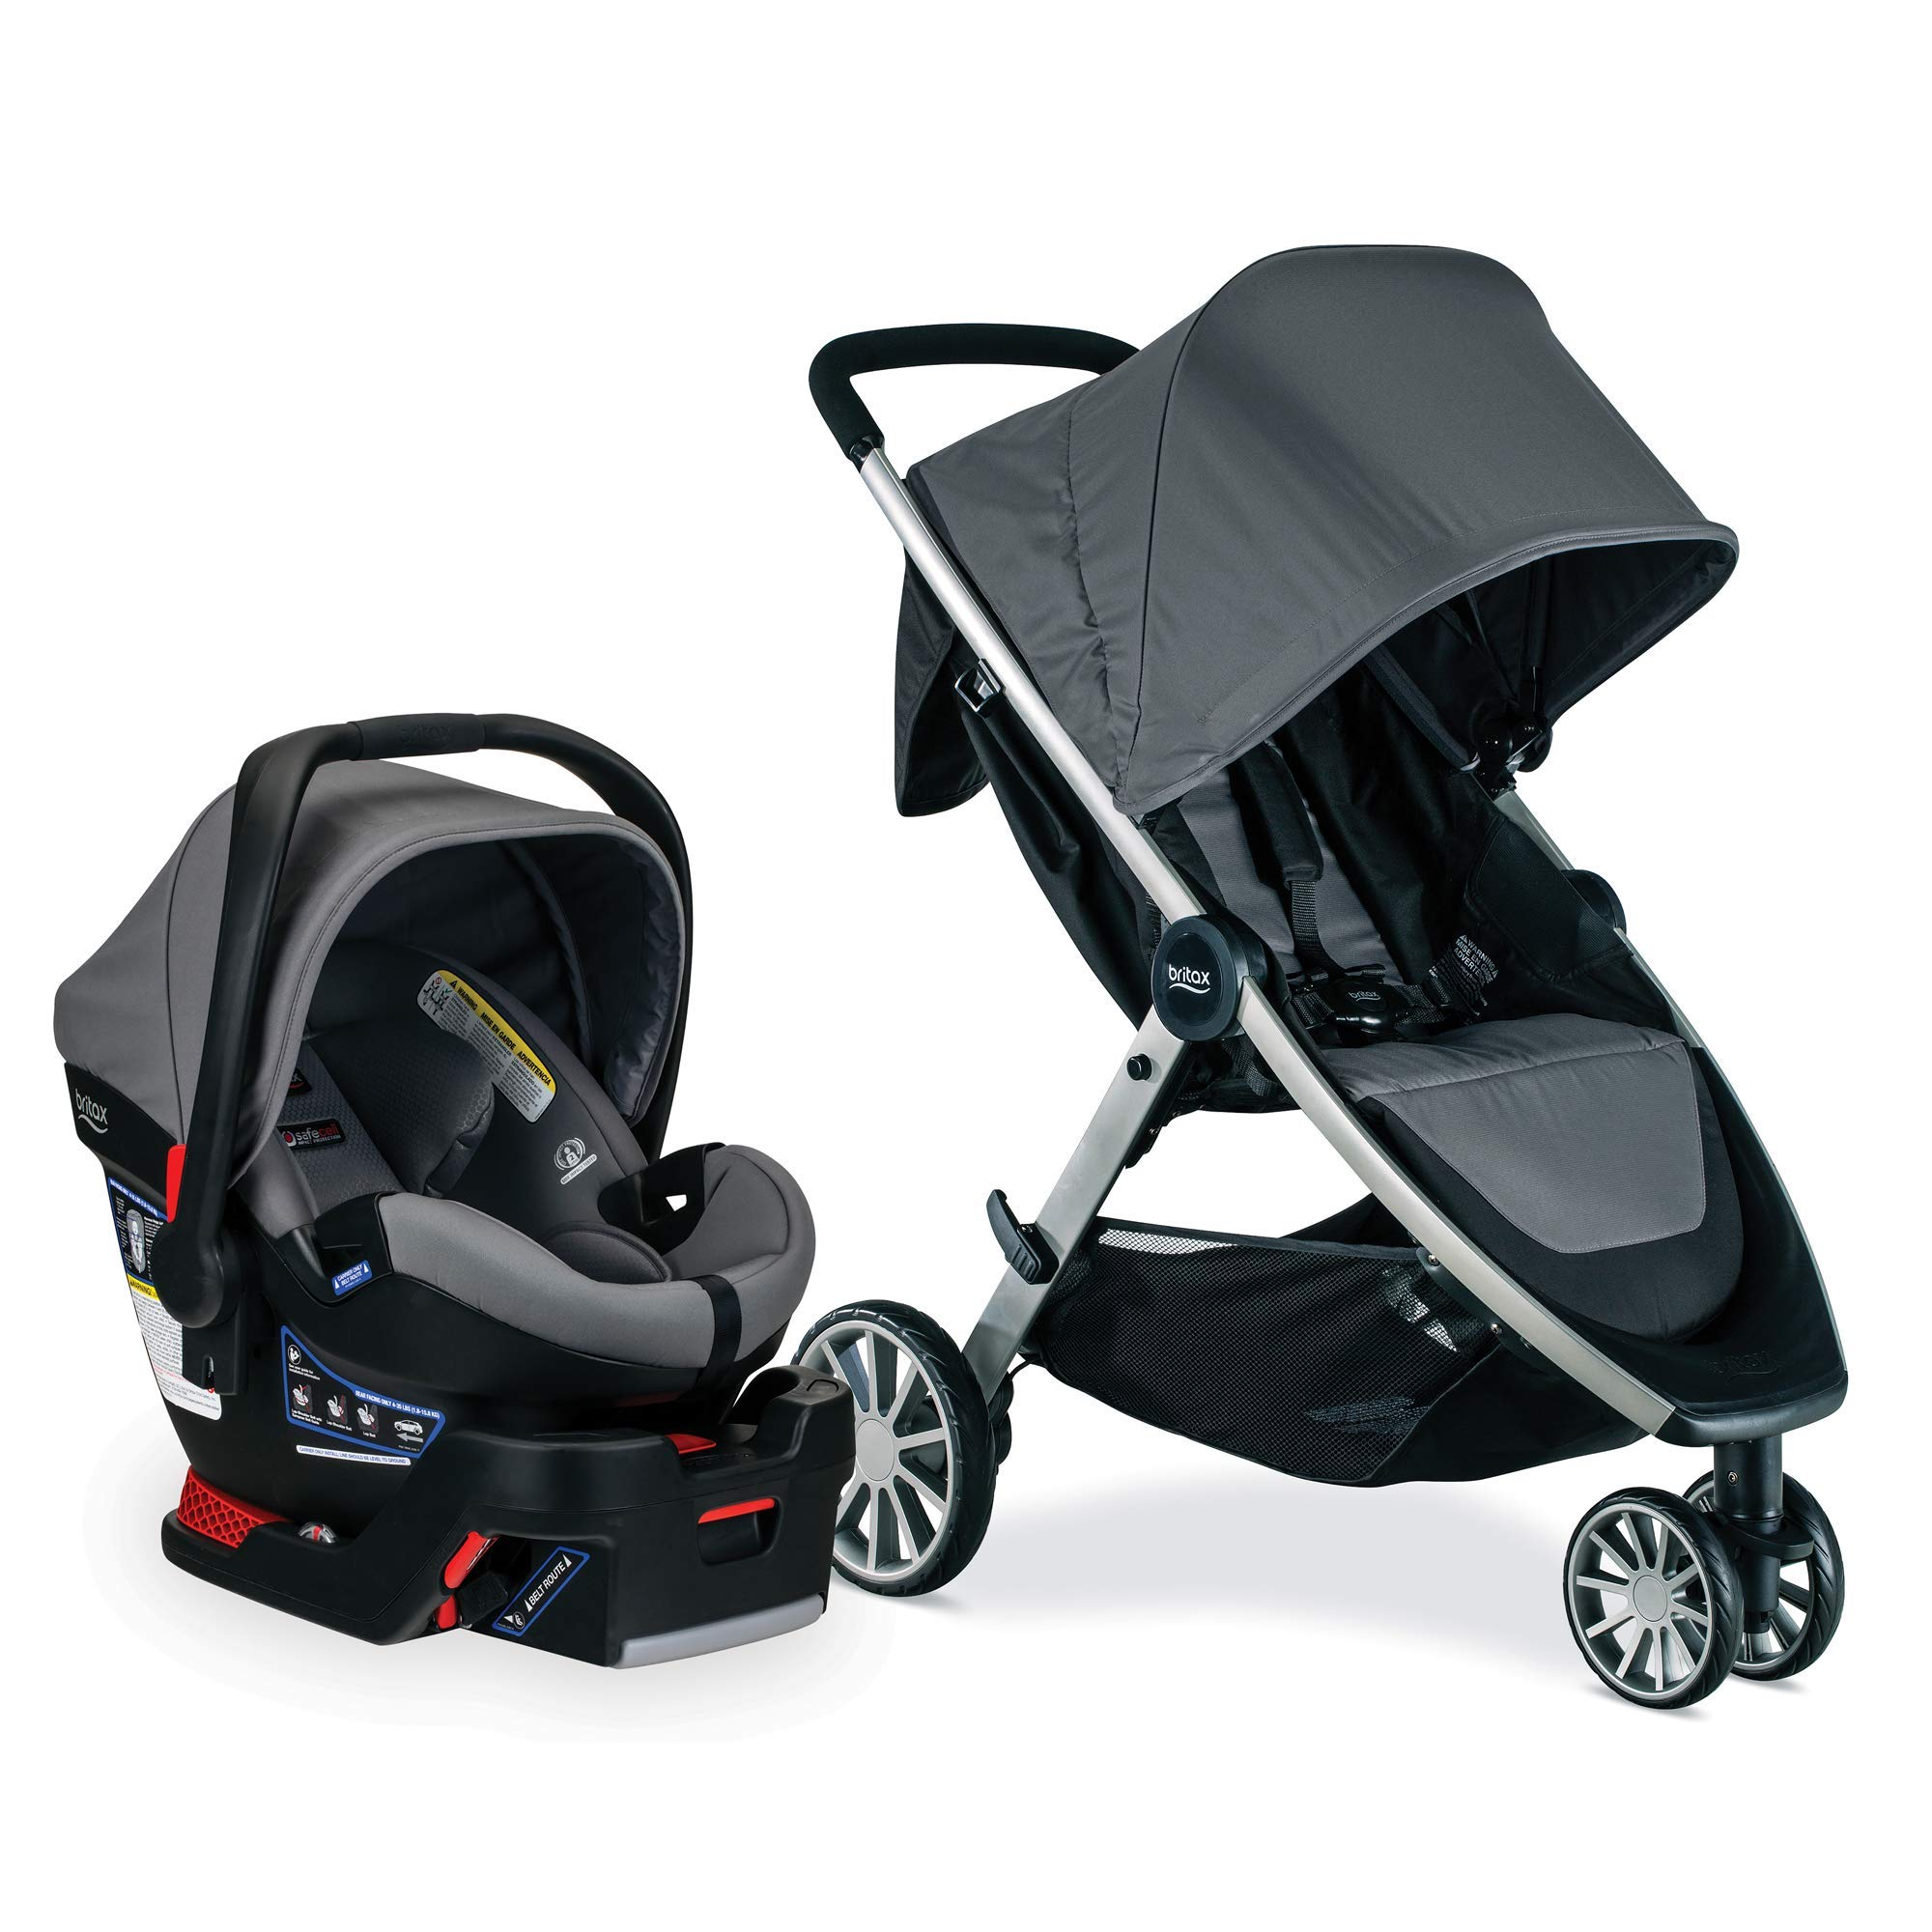 Britax B-Lively Travel System with B-Safe Ultra Infant Care Seat, Gris - Birth to 55 pounds by BRITAX